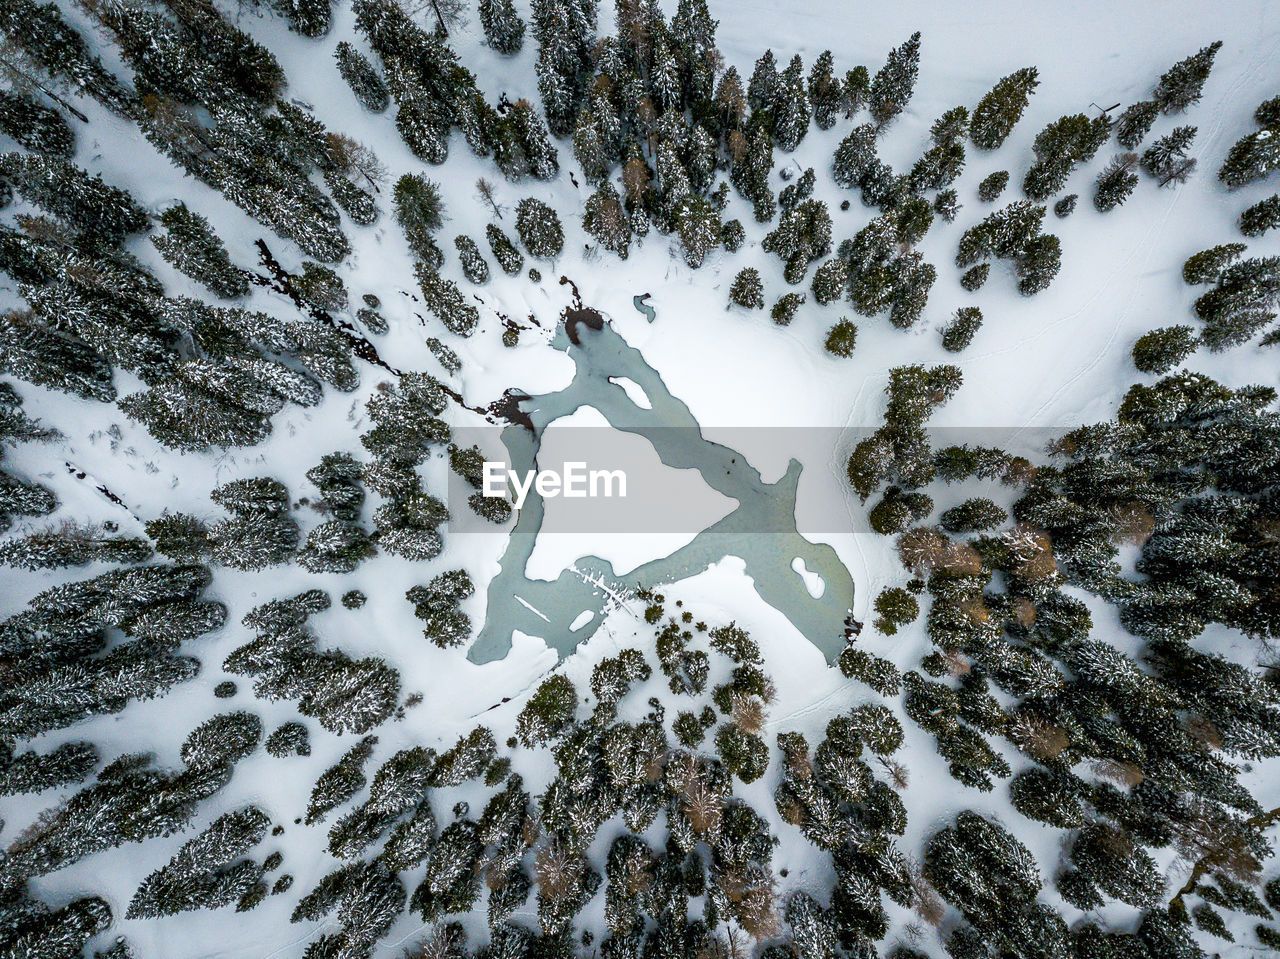 winter, snow, cold temperature, nature, covering, plant, no people, beauty in nature, day, tree, white color, land, high angle view, tranquility, field, outdoors, scenics - nature, tranquil scene, non-urban scene, snowcapped mountain